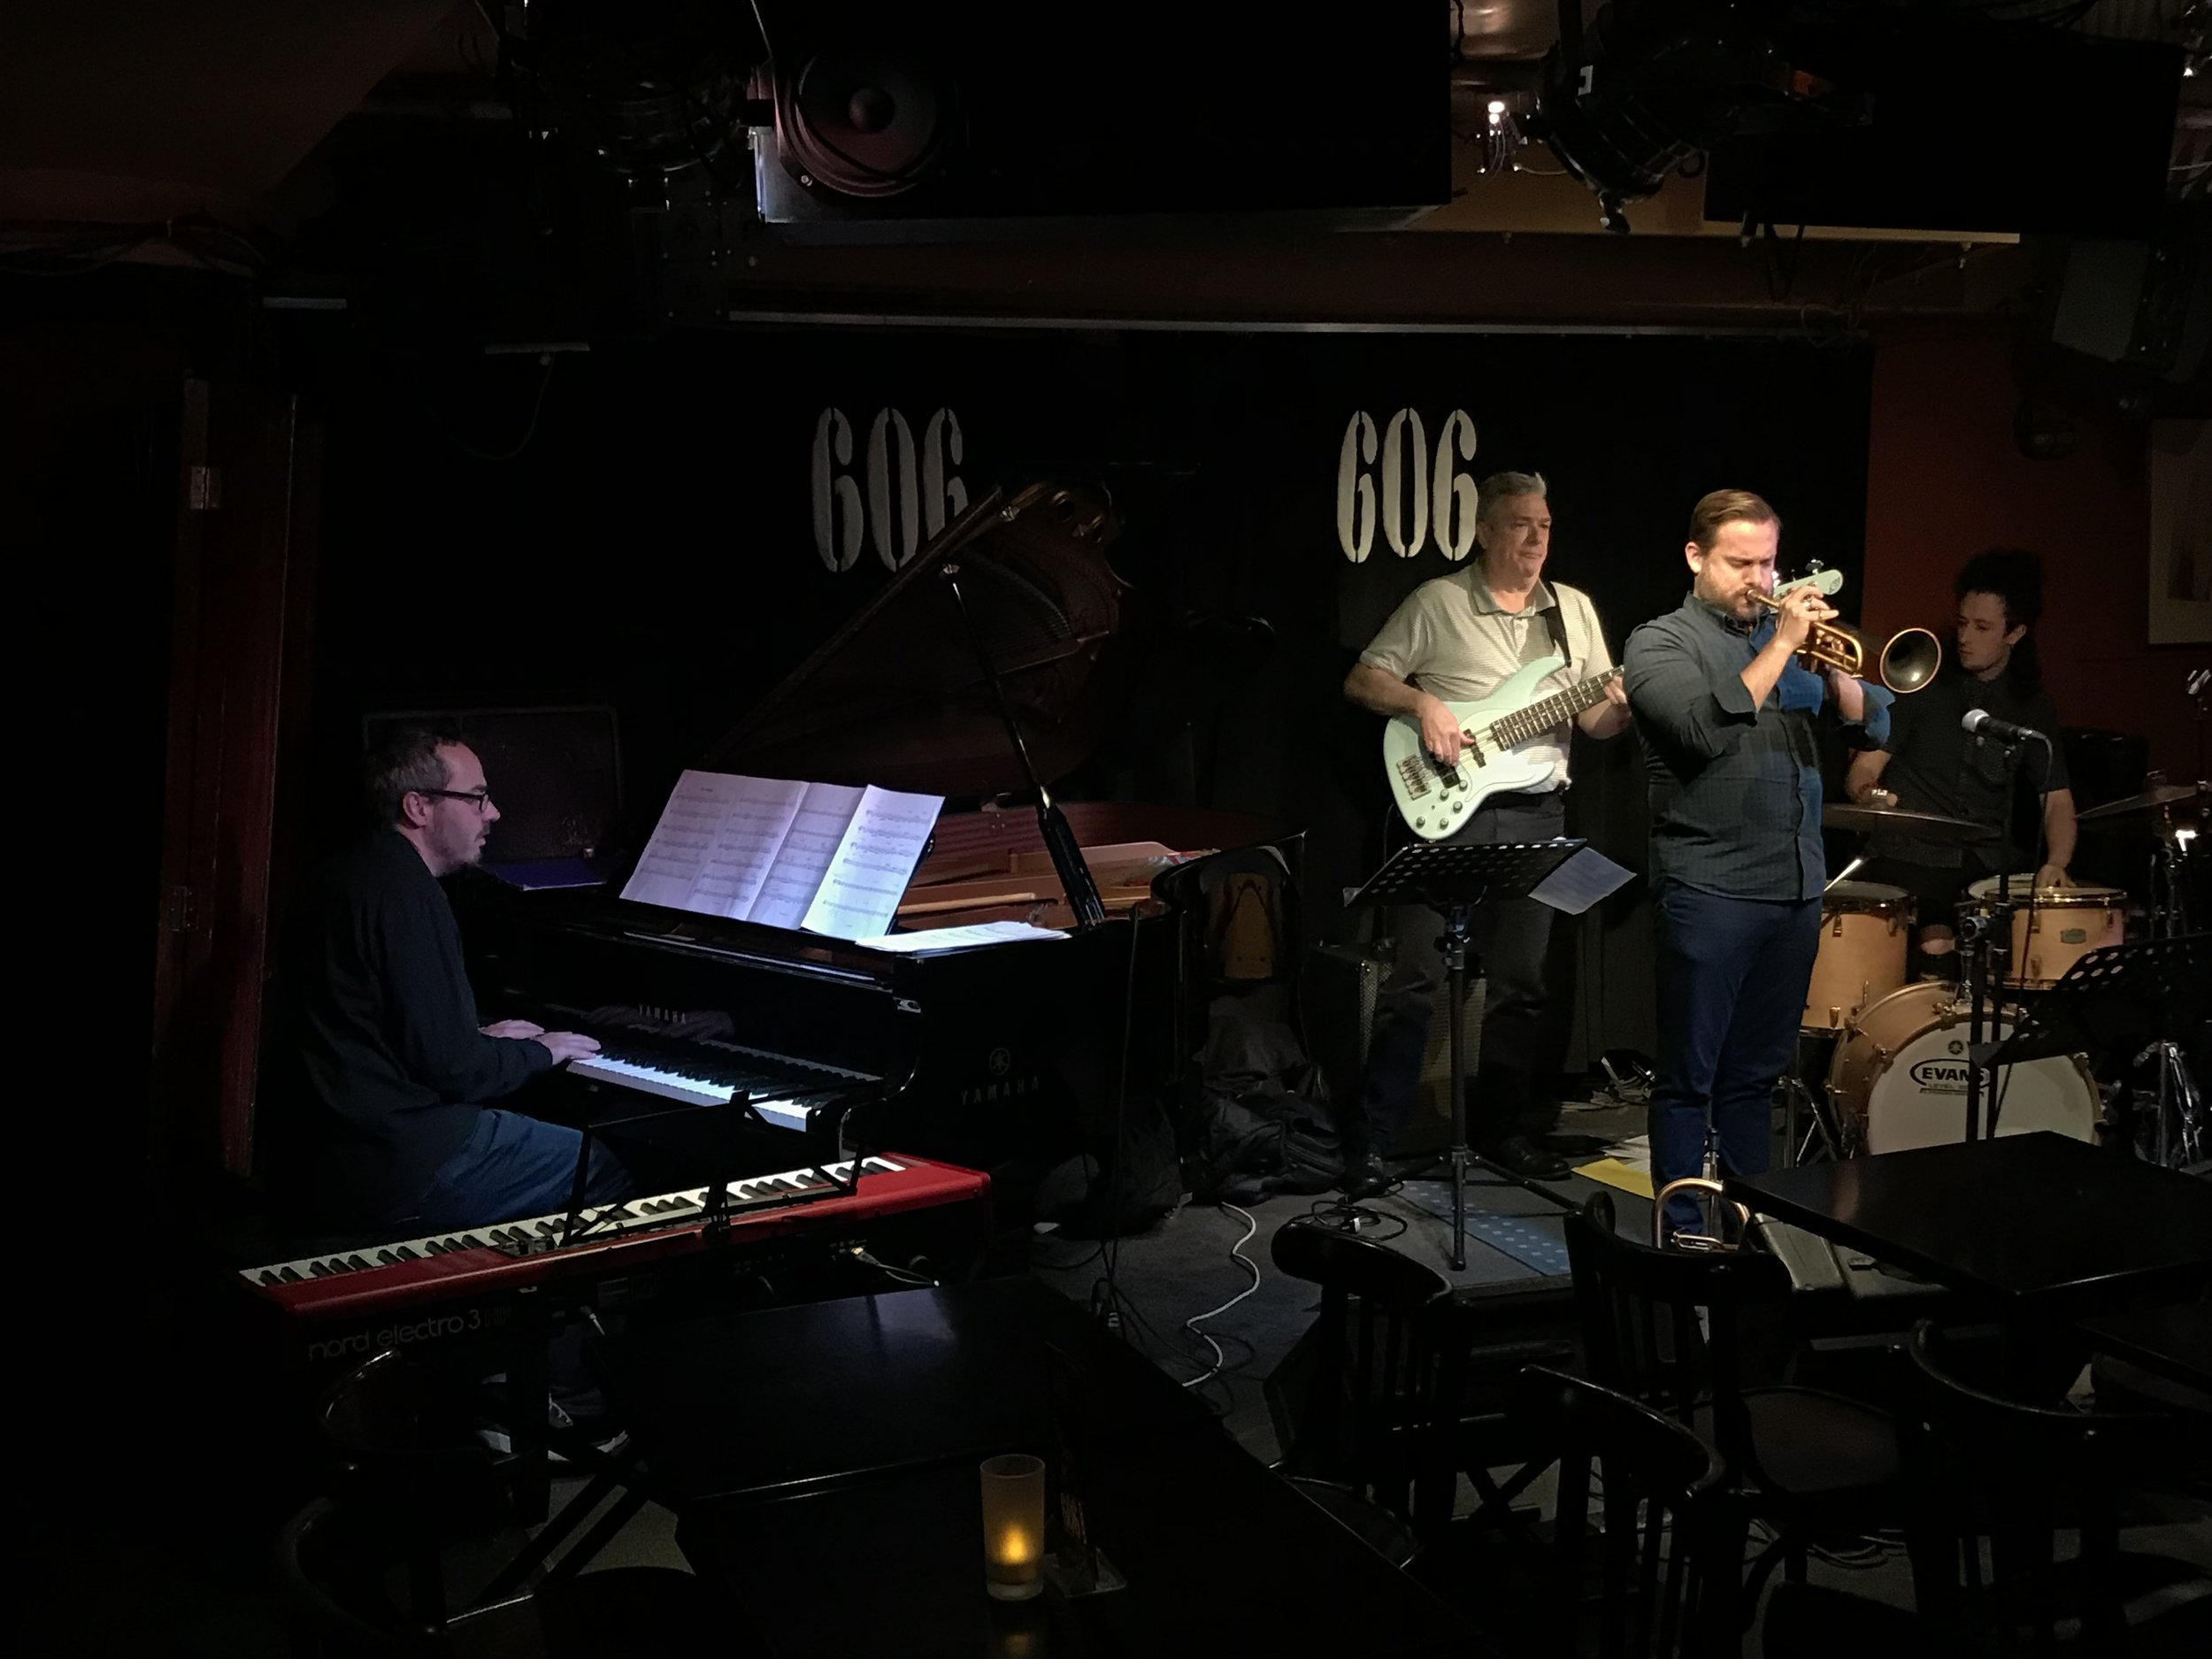 Quentin Collins, with Laurence, Jim and Jamie, at the 606 Club.